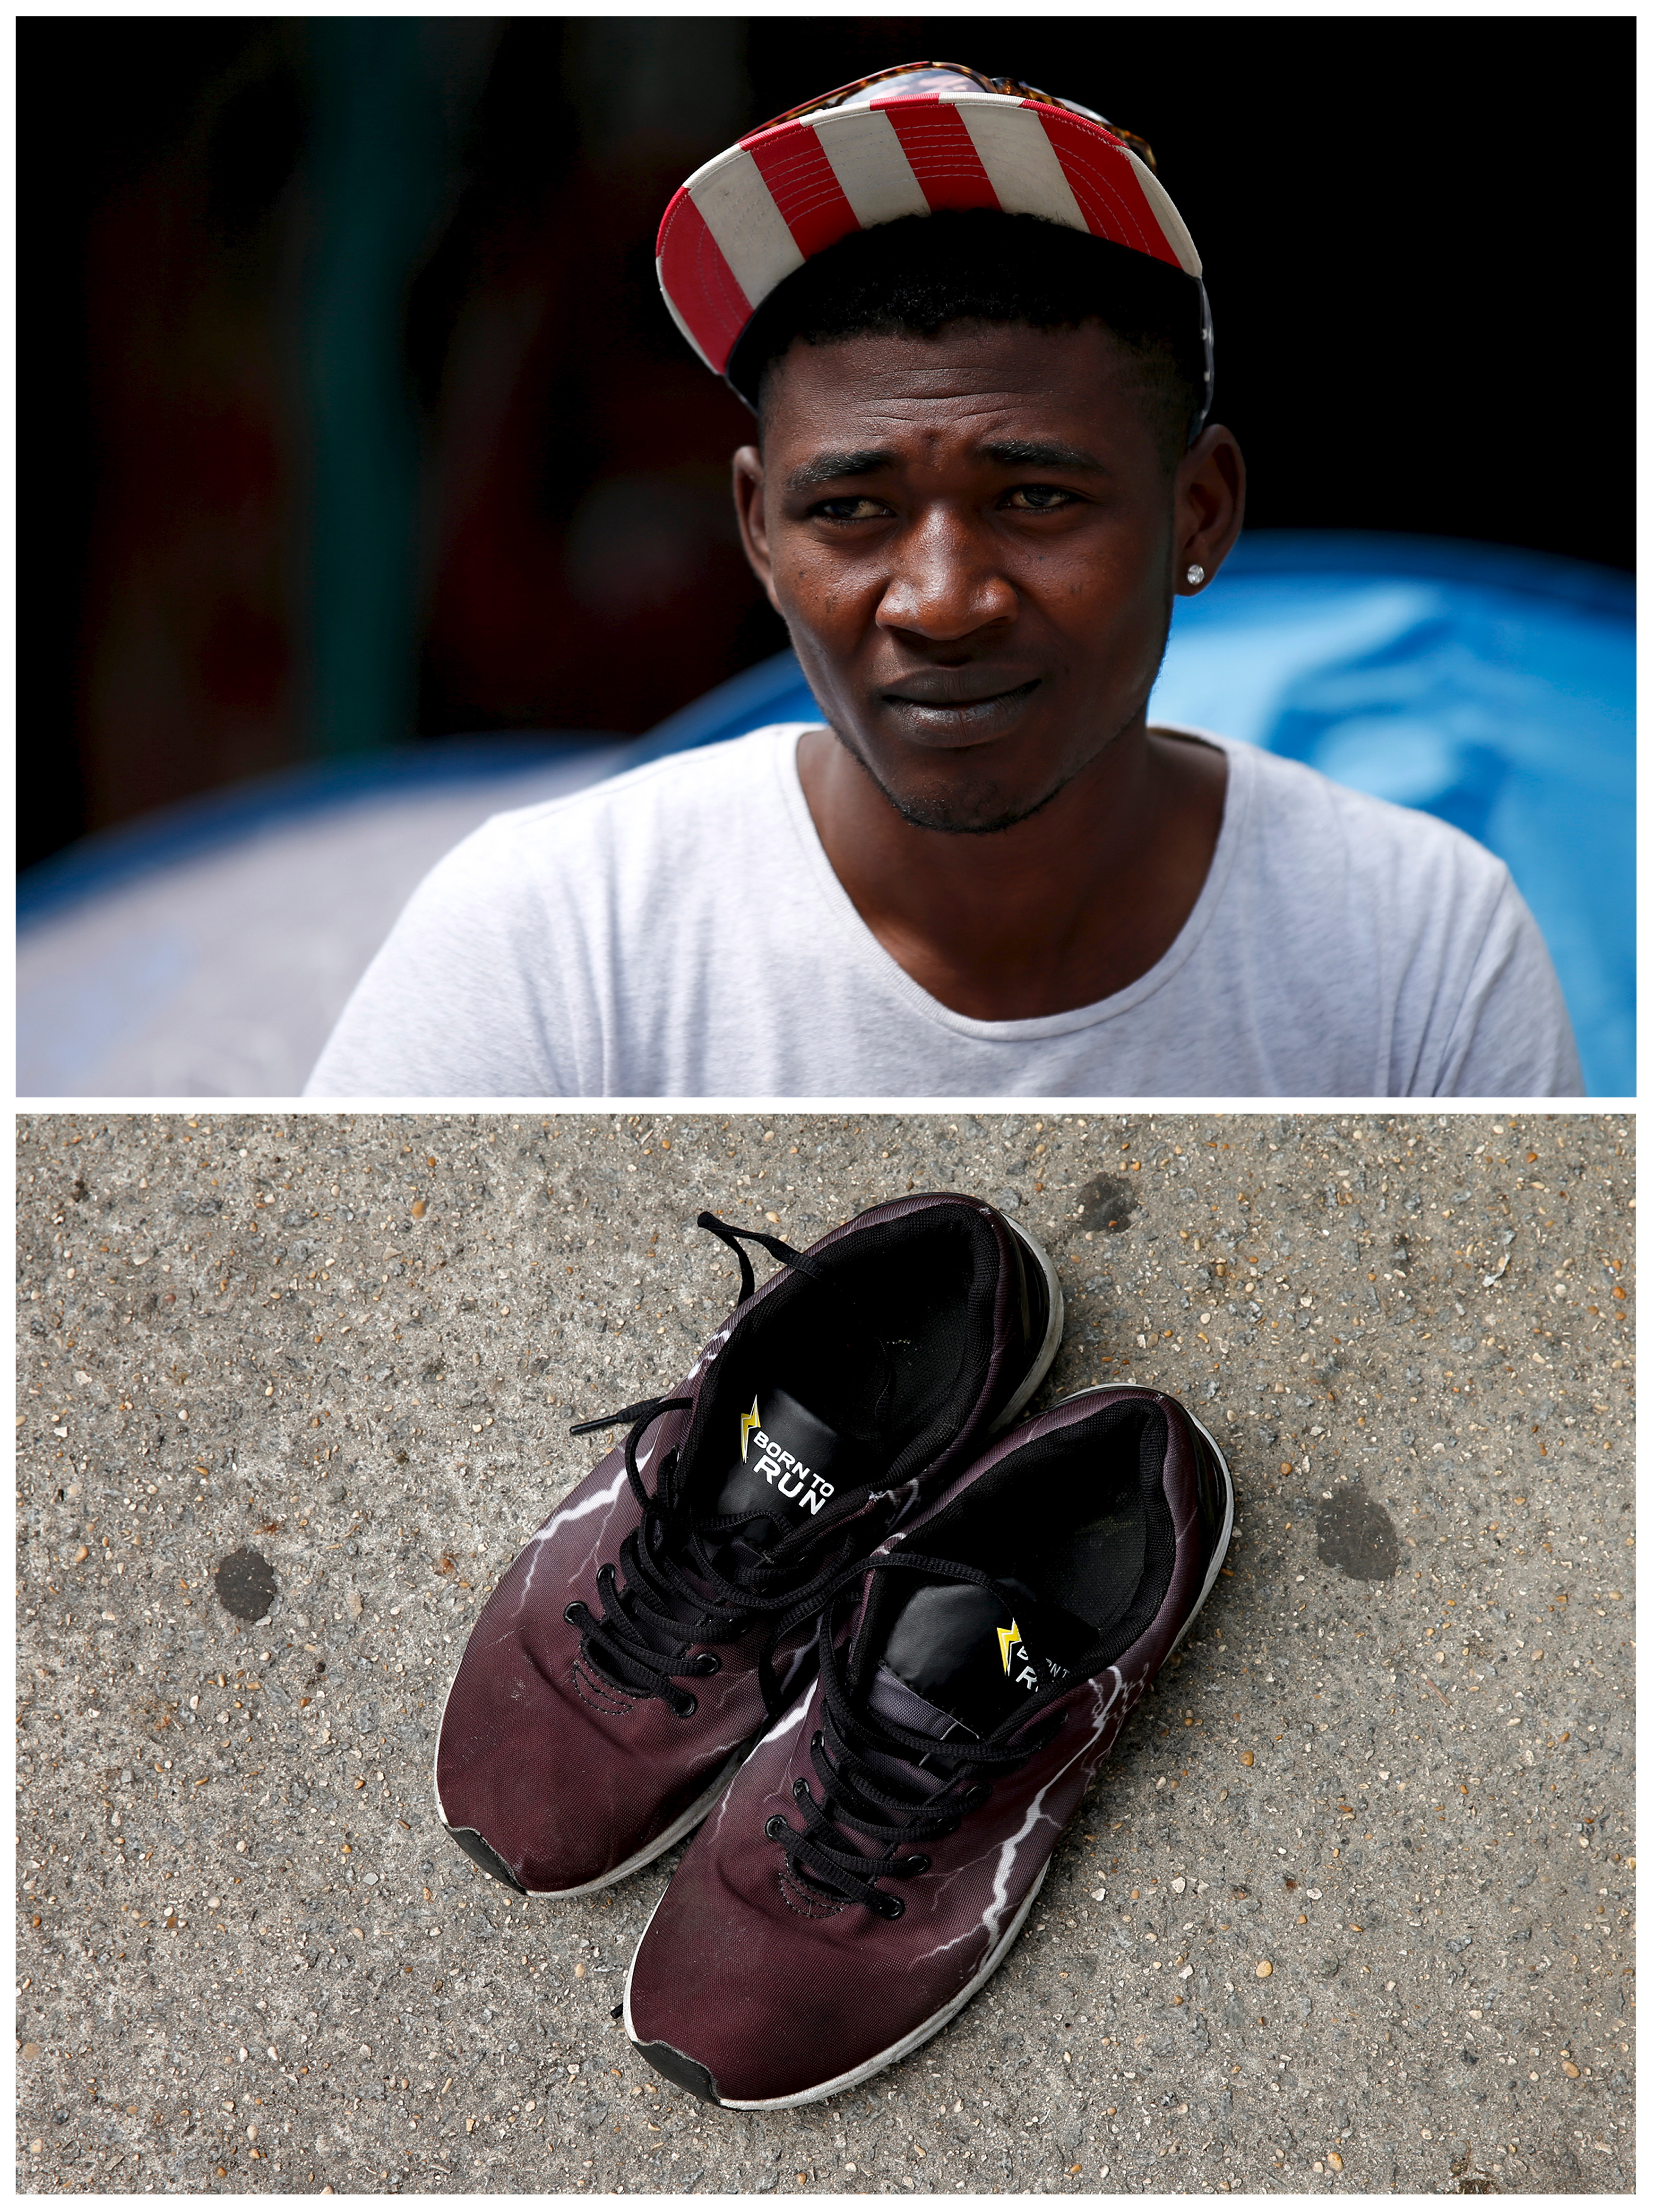 Abdel Bachir, 20, a migrant from Chad with a pair of his shoes at a makeshift camp where he lives in front of the Austerlitz train station in the southeast of Paris, France, on May 28, 2015. Photo by Benoit Tessier/Reuters